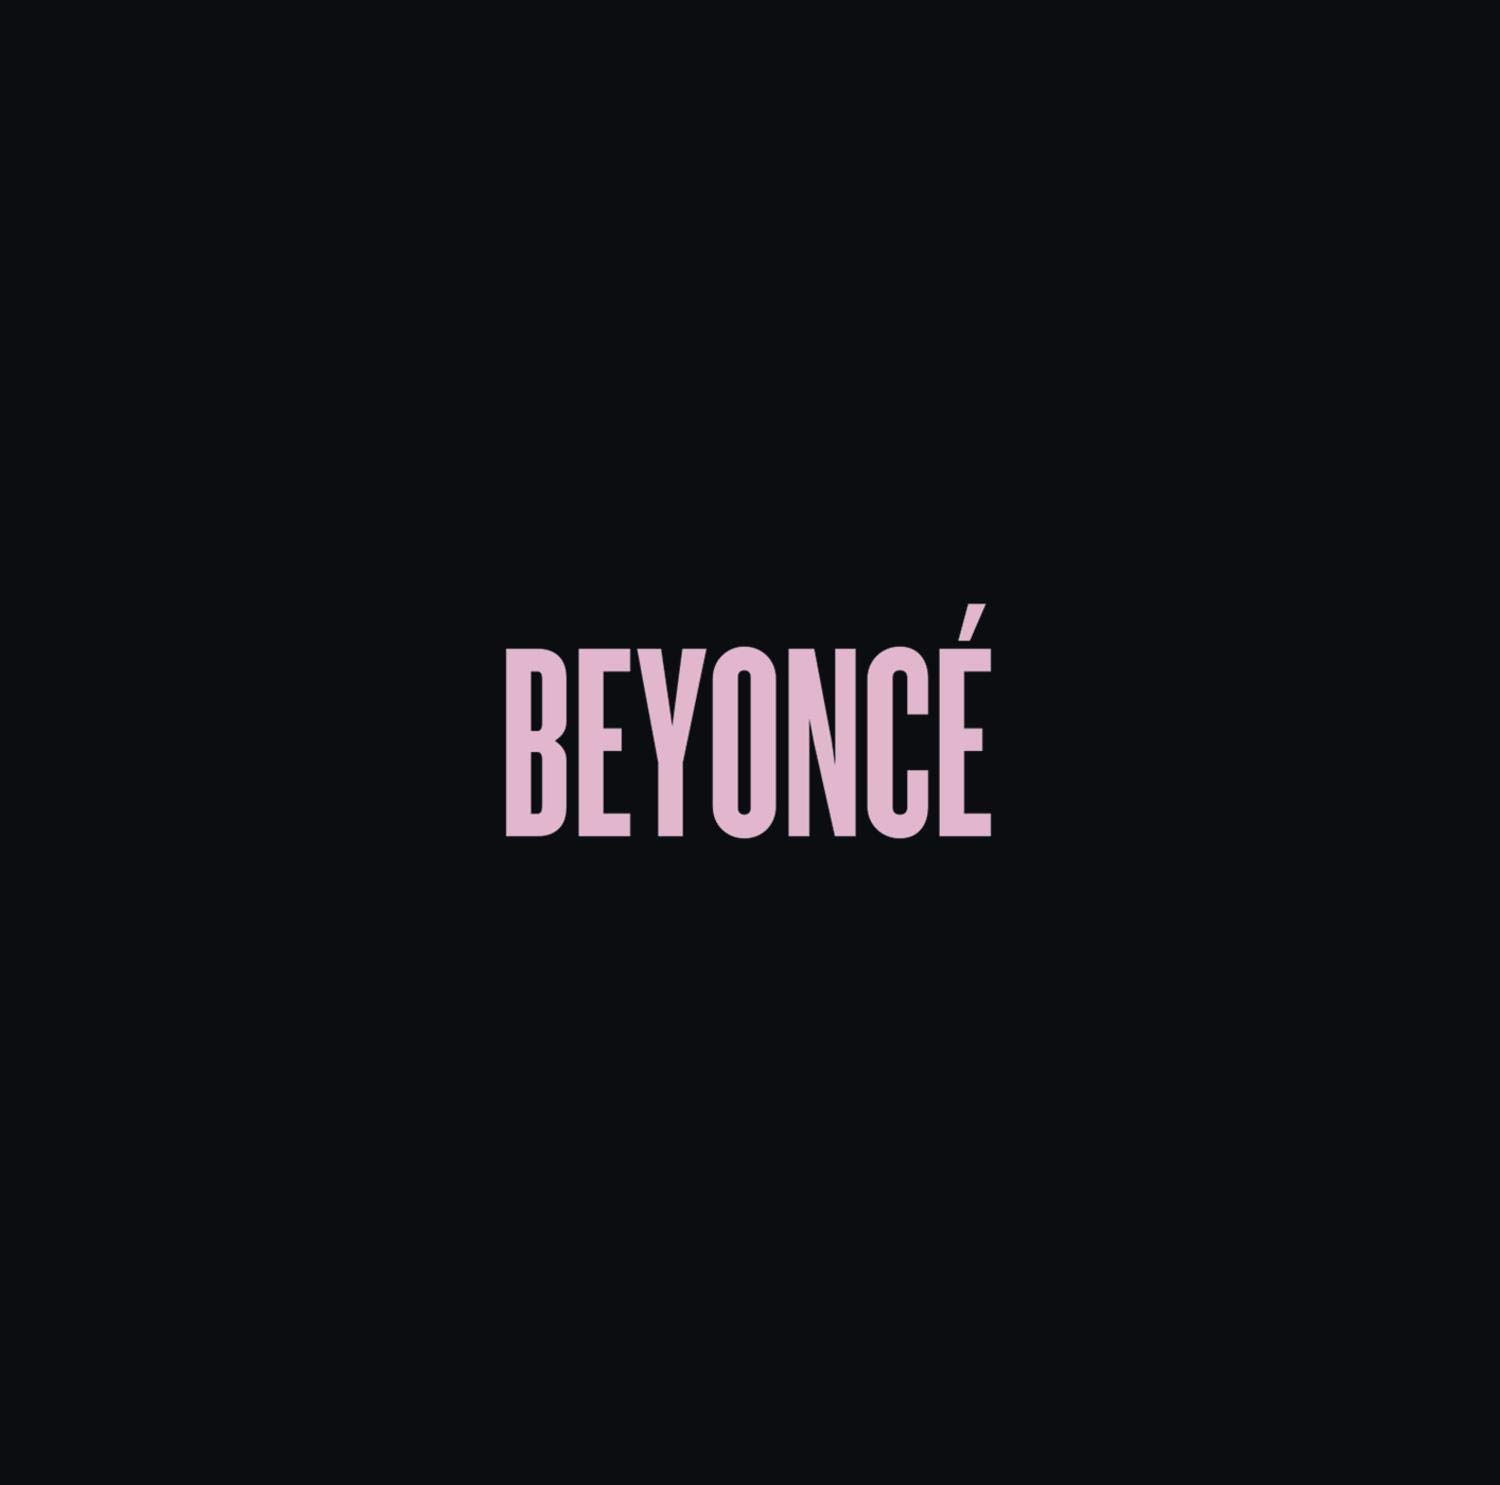 Beyonce Explicit Lyrics